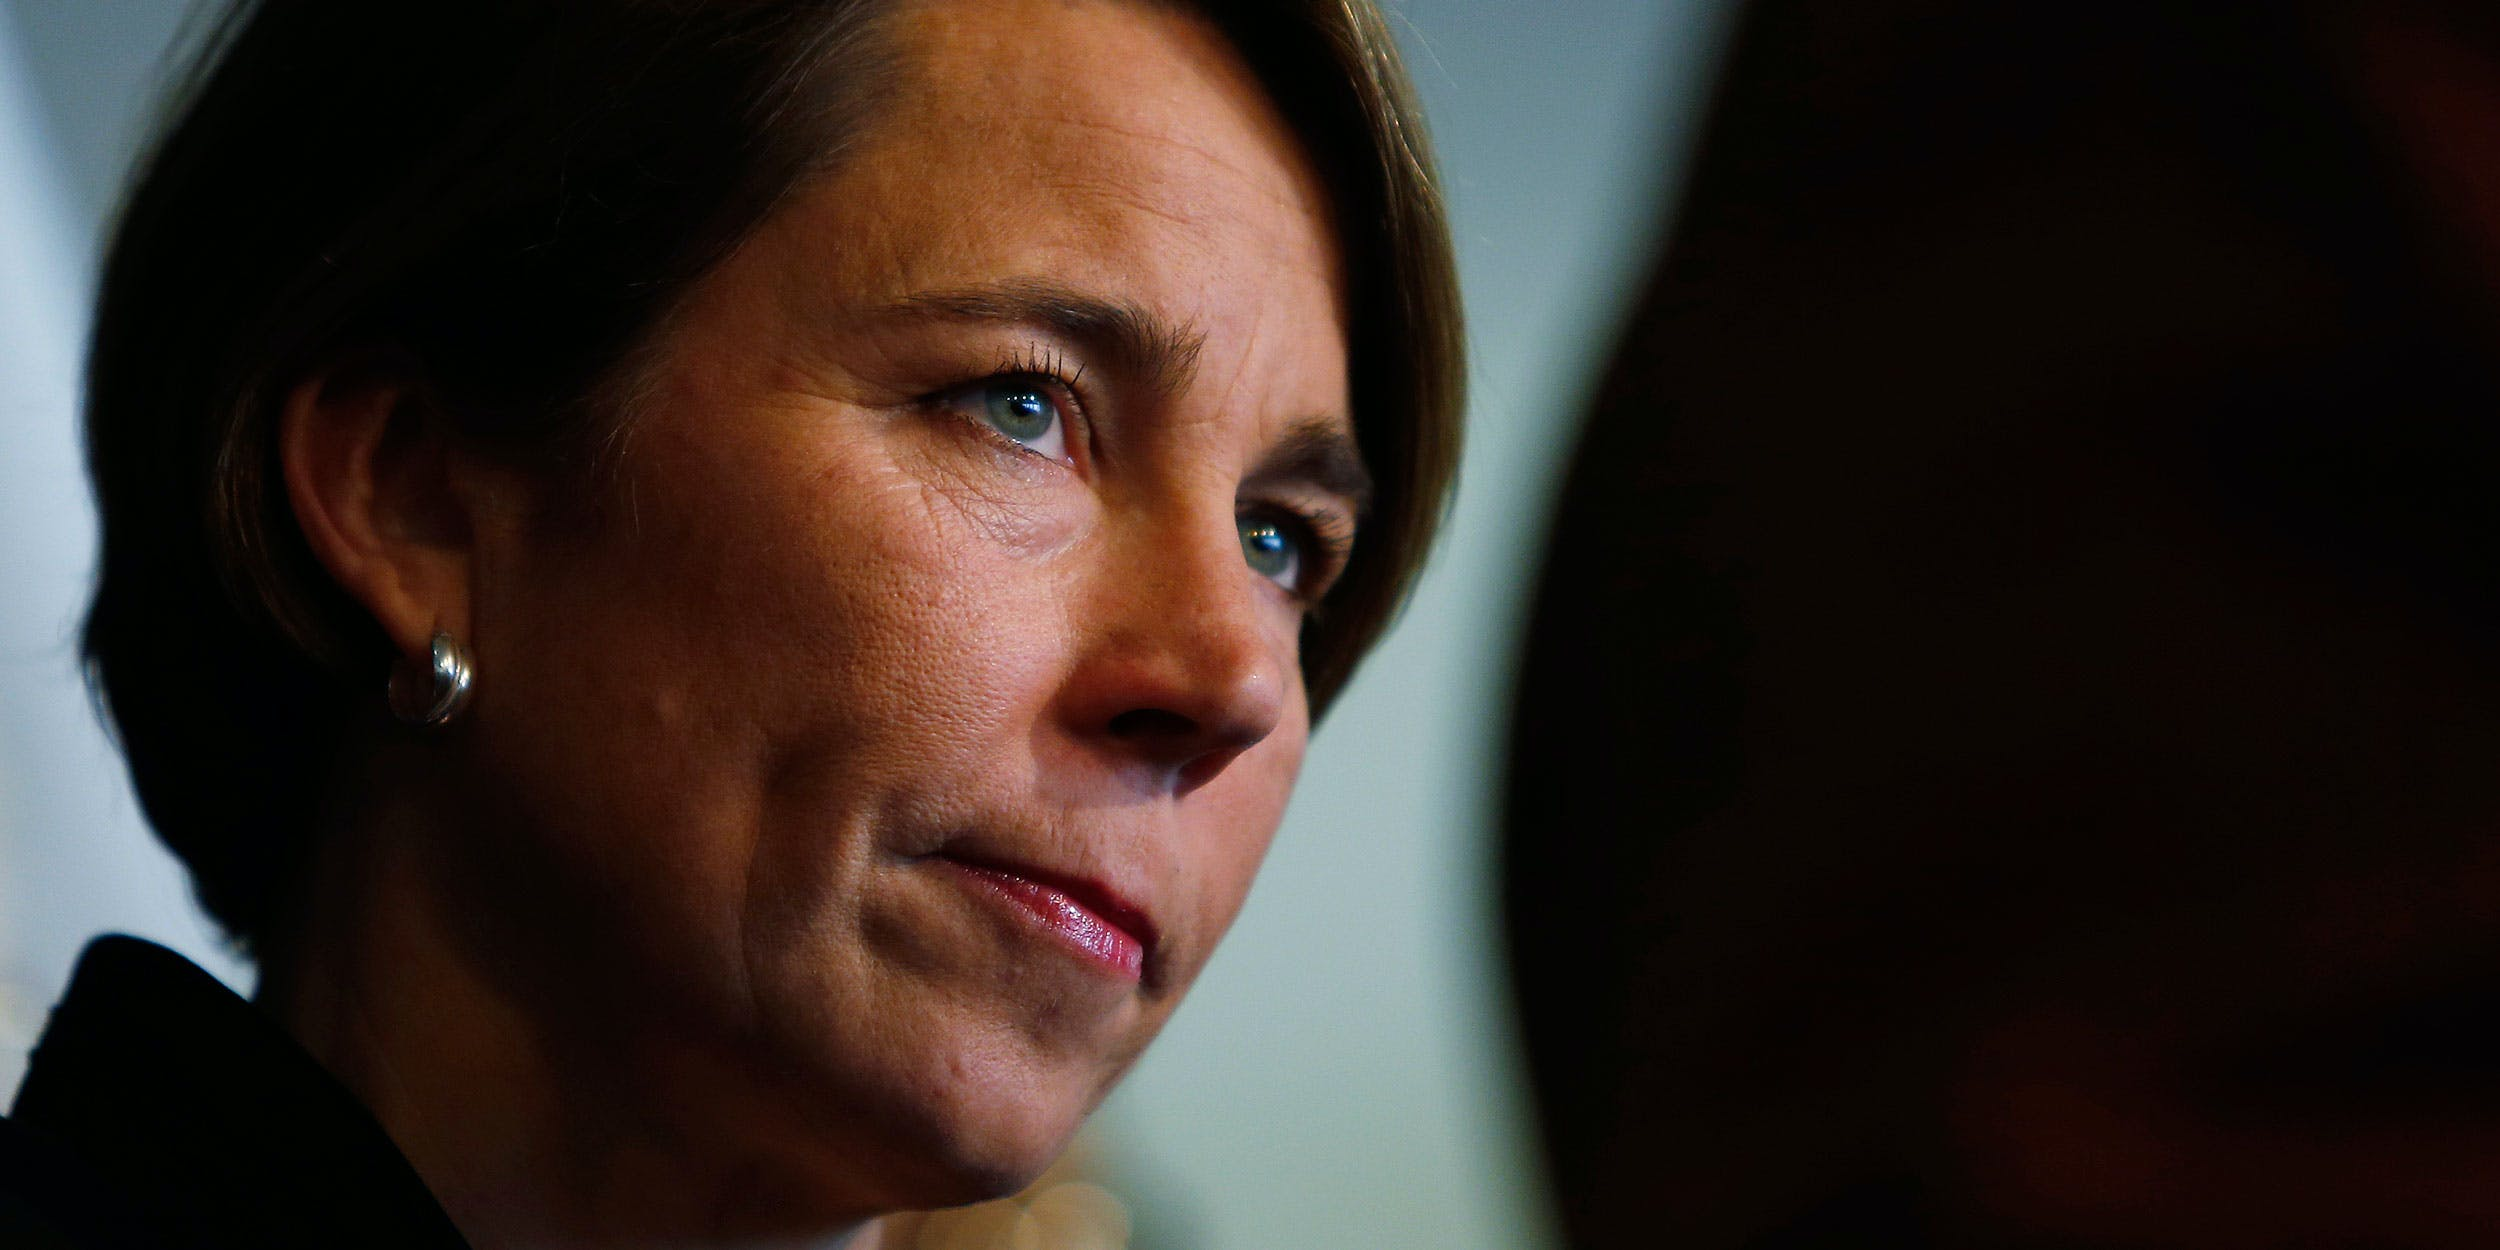 Massachusetts Attorney General Maura Healey (Photo by Jessica Rinaldi/The Boston Globe via Getty Images)